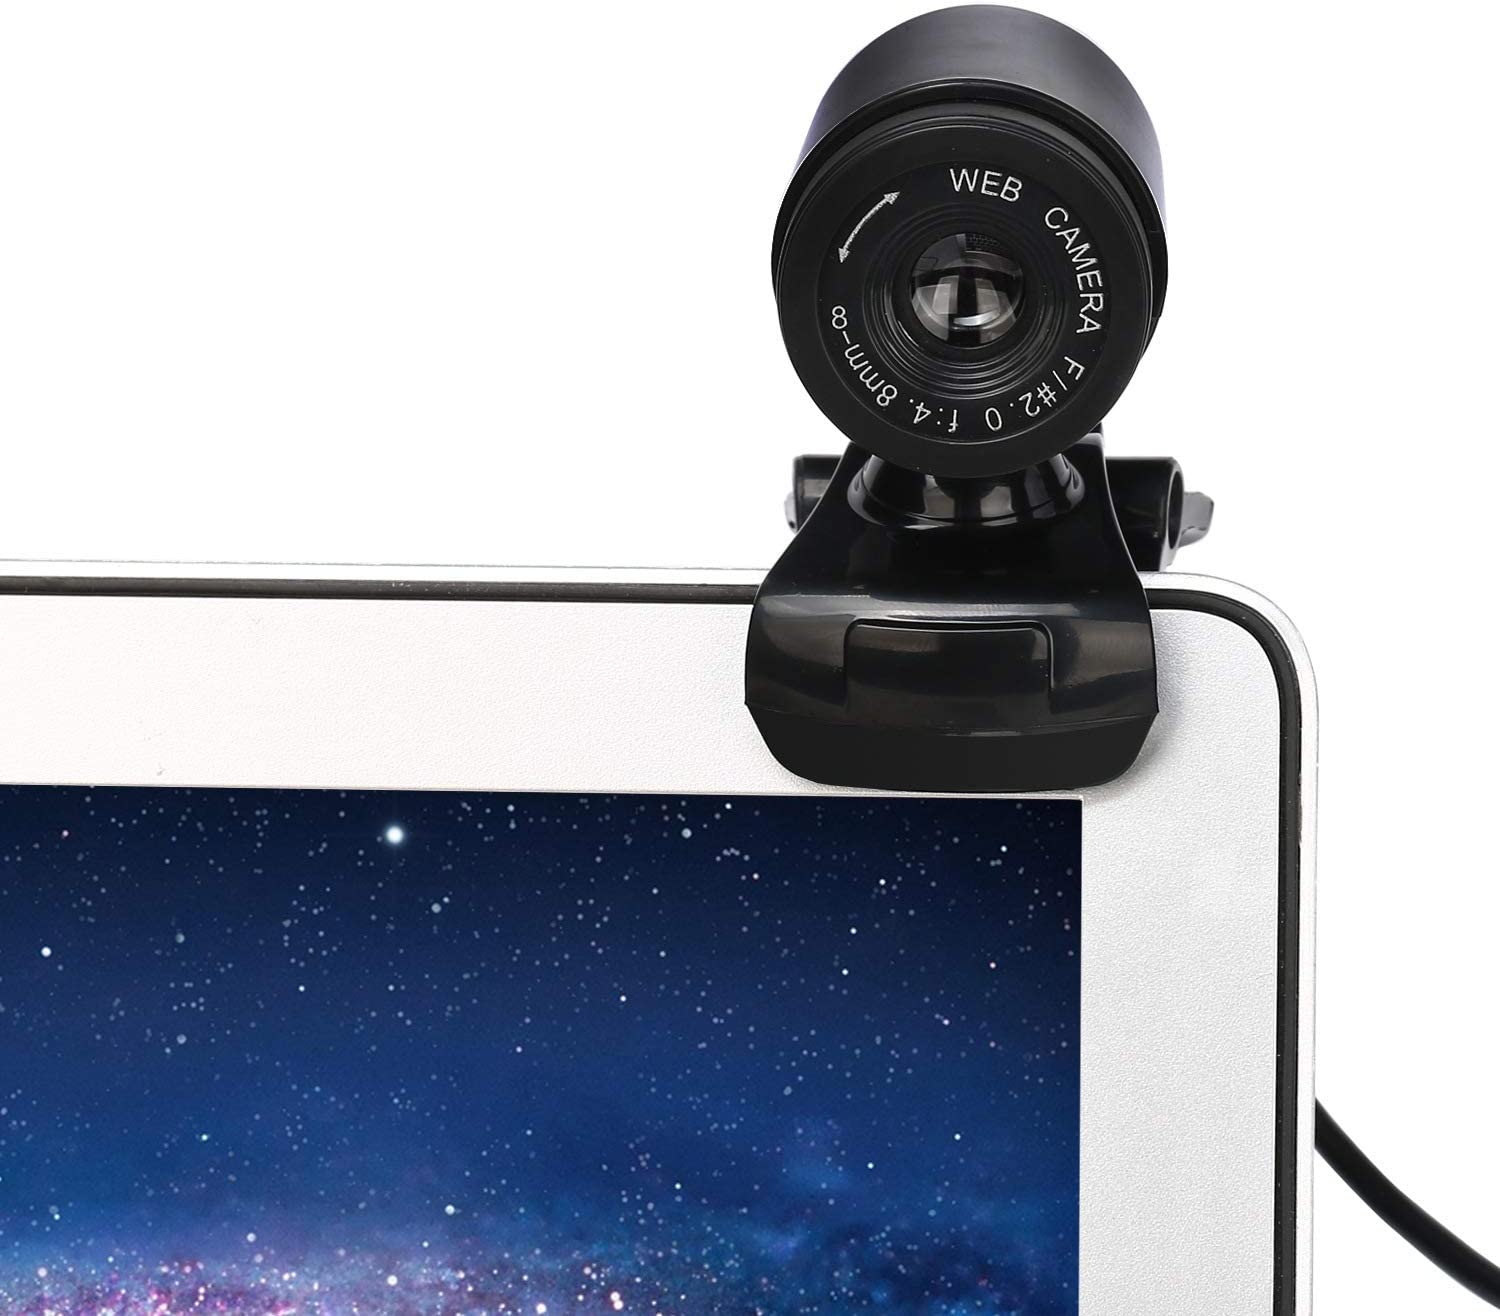 KCatsy USB Video Webcam 12MP 1080P HD Video Camera 360/°Rotation Adjustable Light Correcting Built-in Microphones Video Camera for Network Teaching Conference